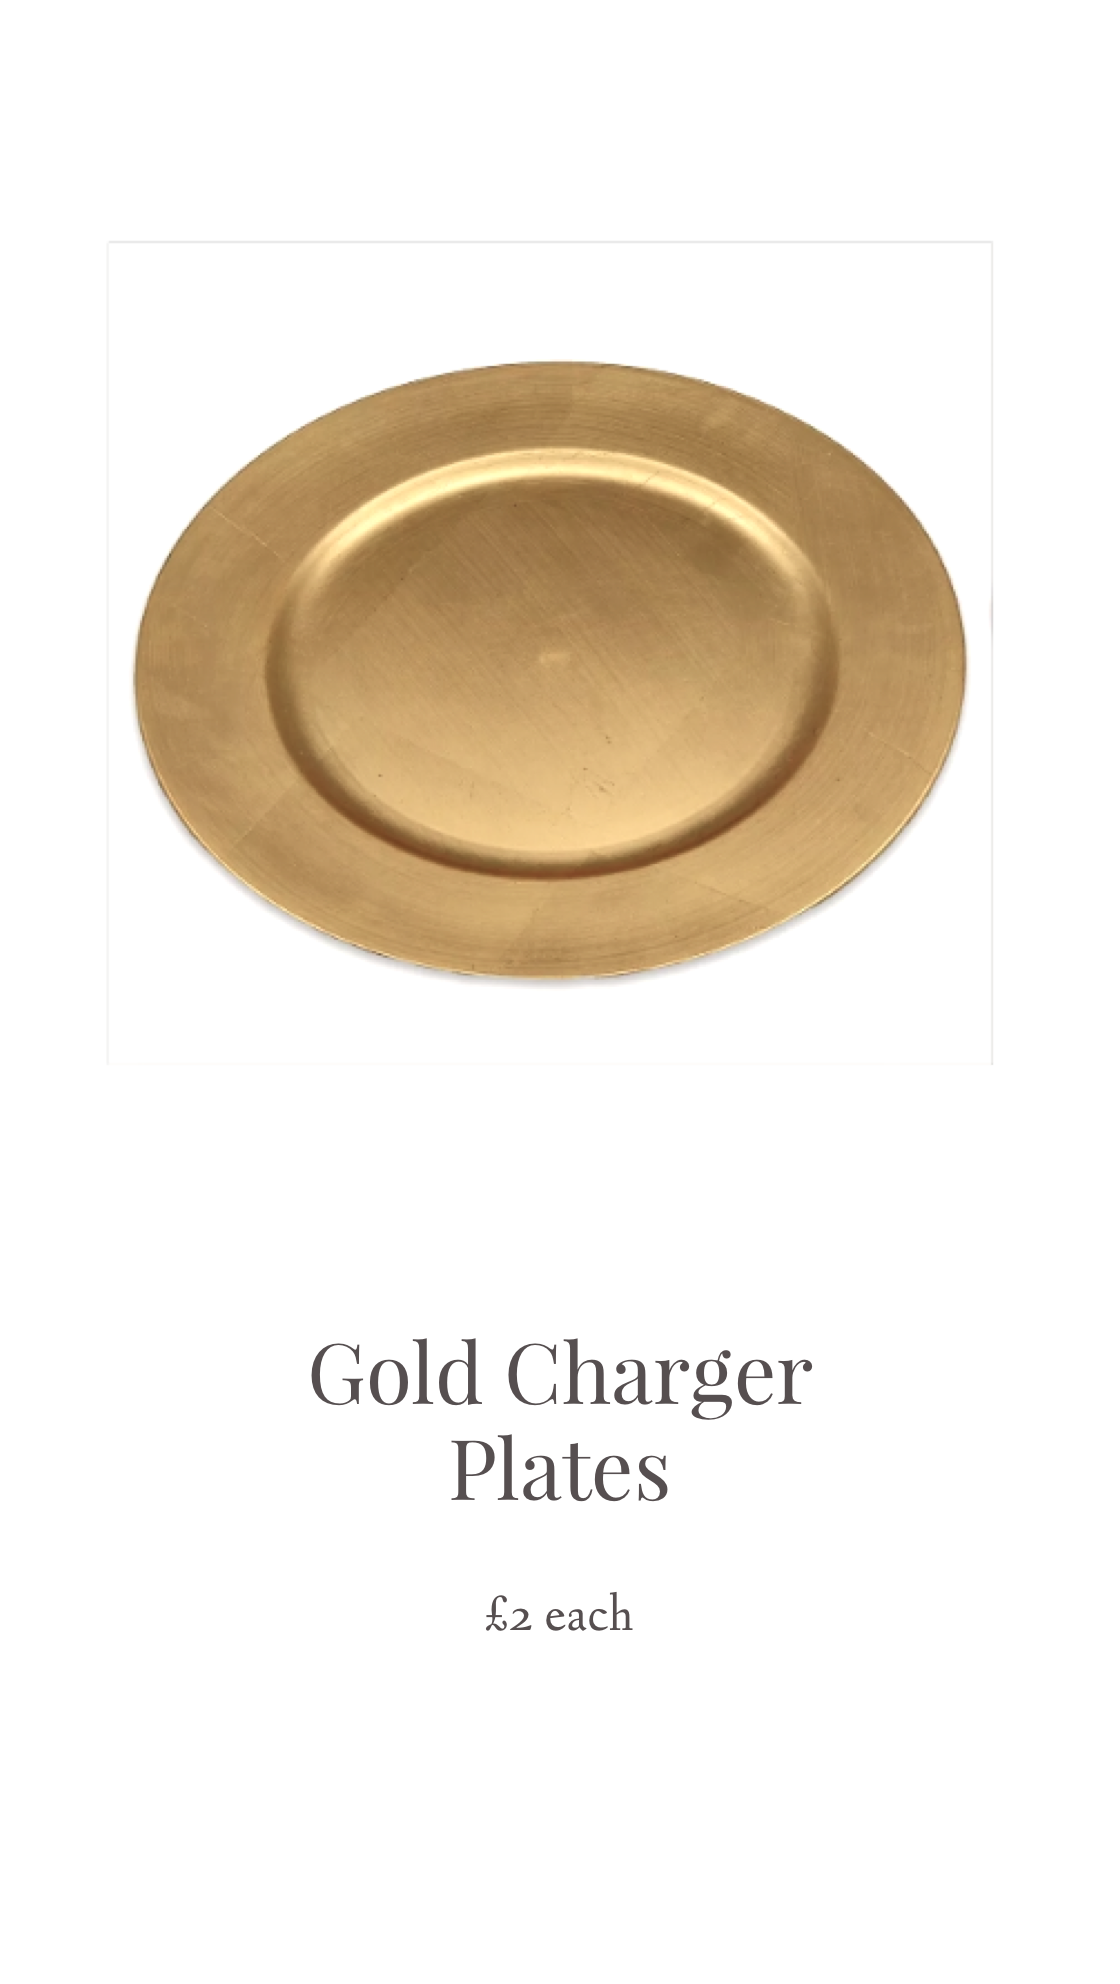 Charger Plate Hire, sass weddingsIMG_4137.PNG